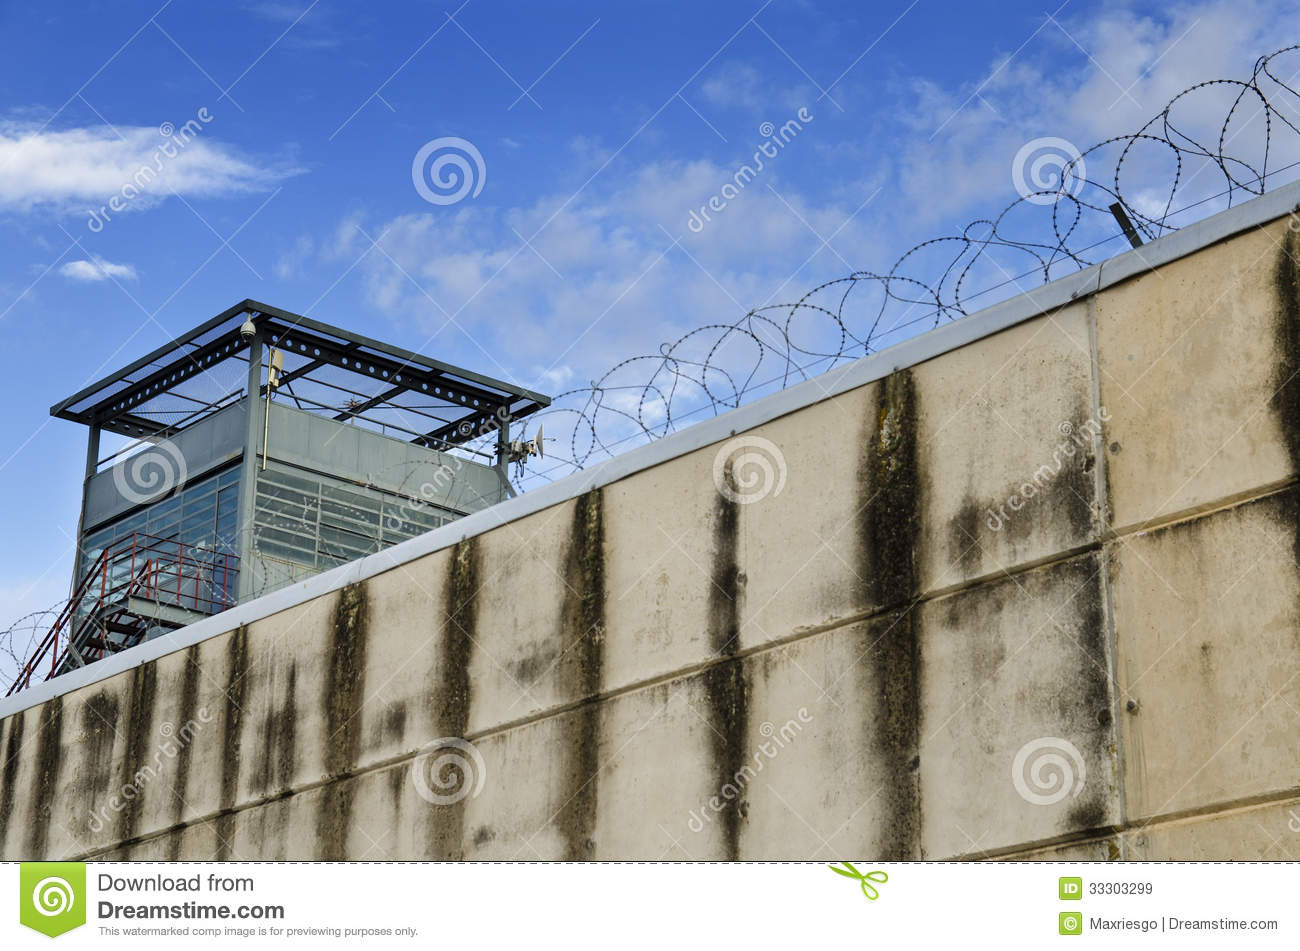 Penetrations in prison walls